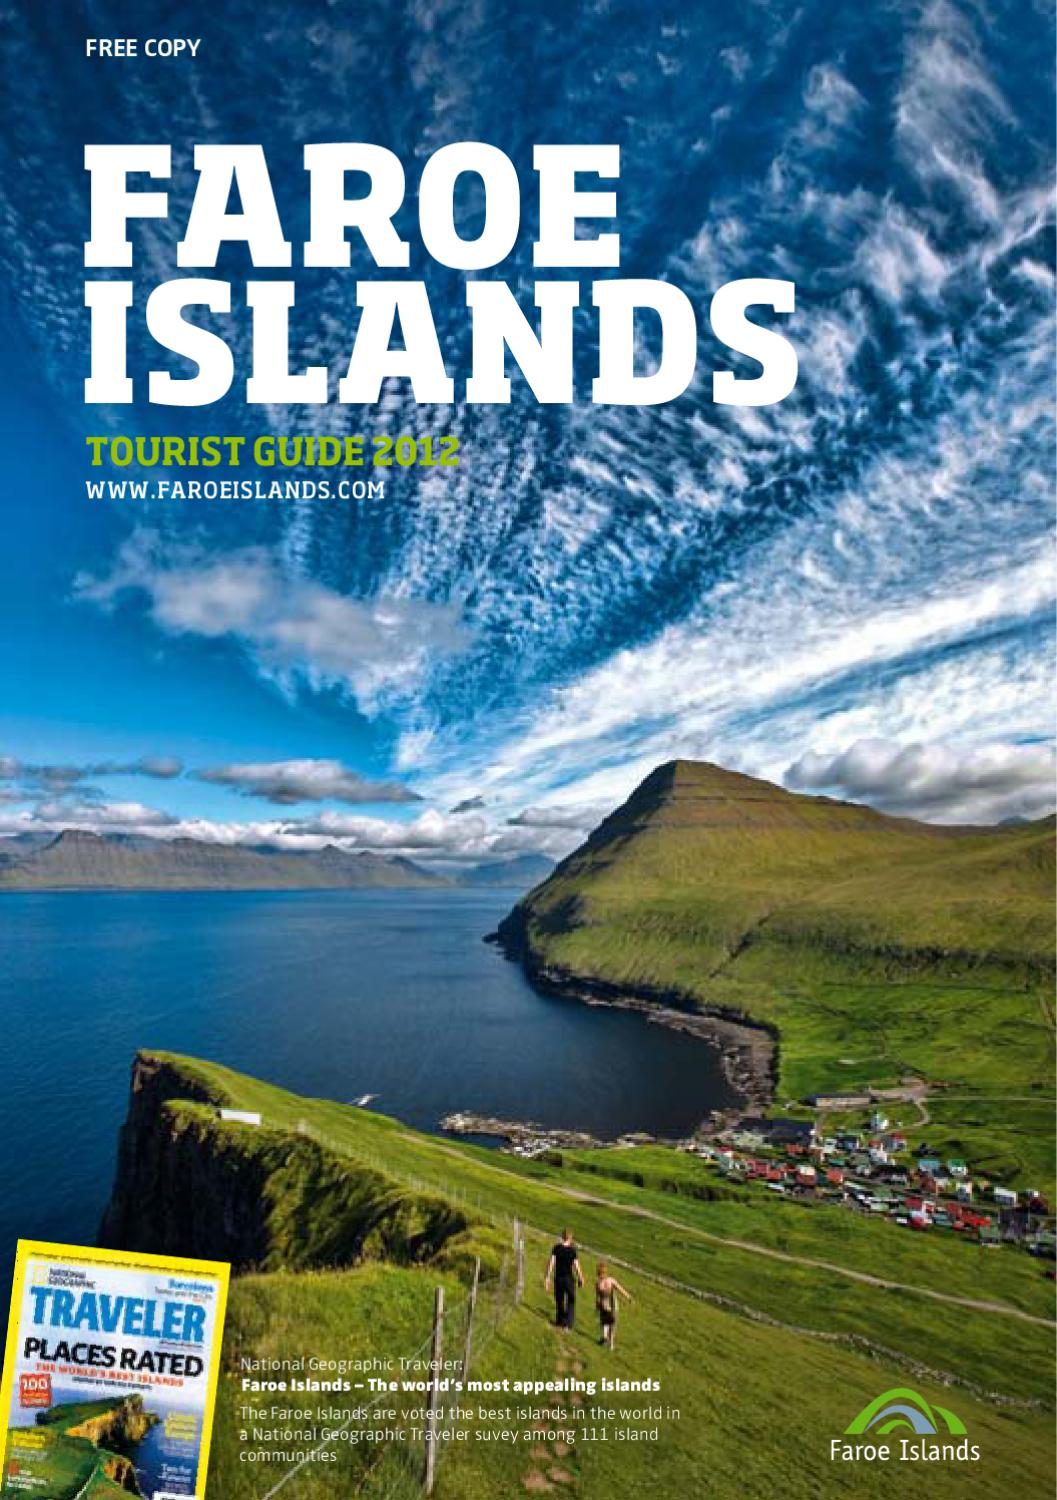 Islands Of The World Fashion Week 2012: Faroe Islands Tourist Guide 2012 By Sansir A/S